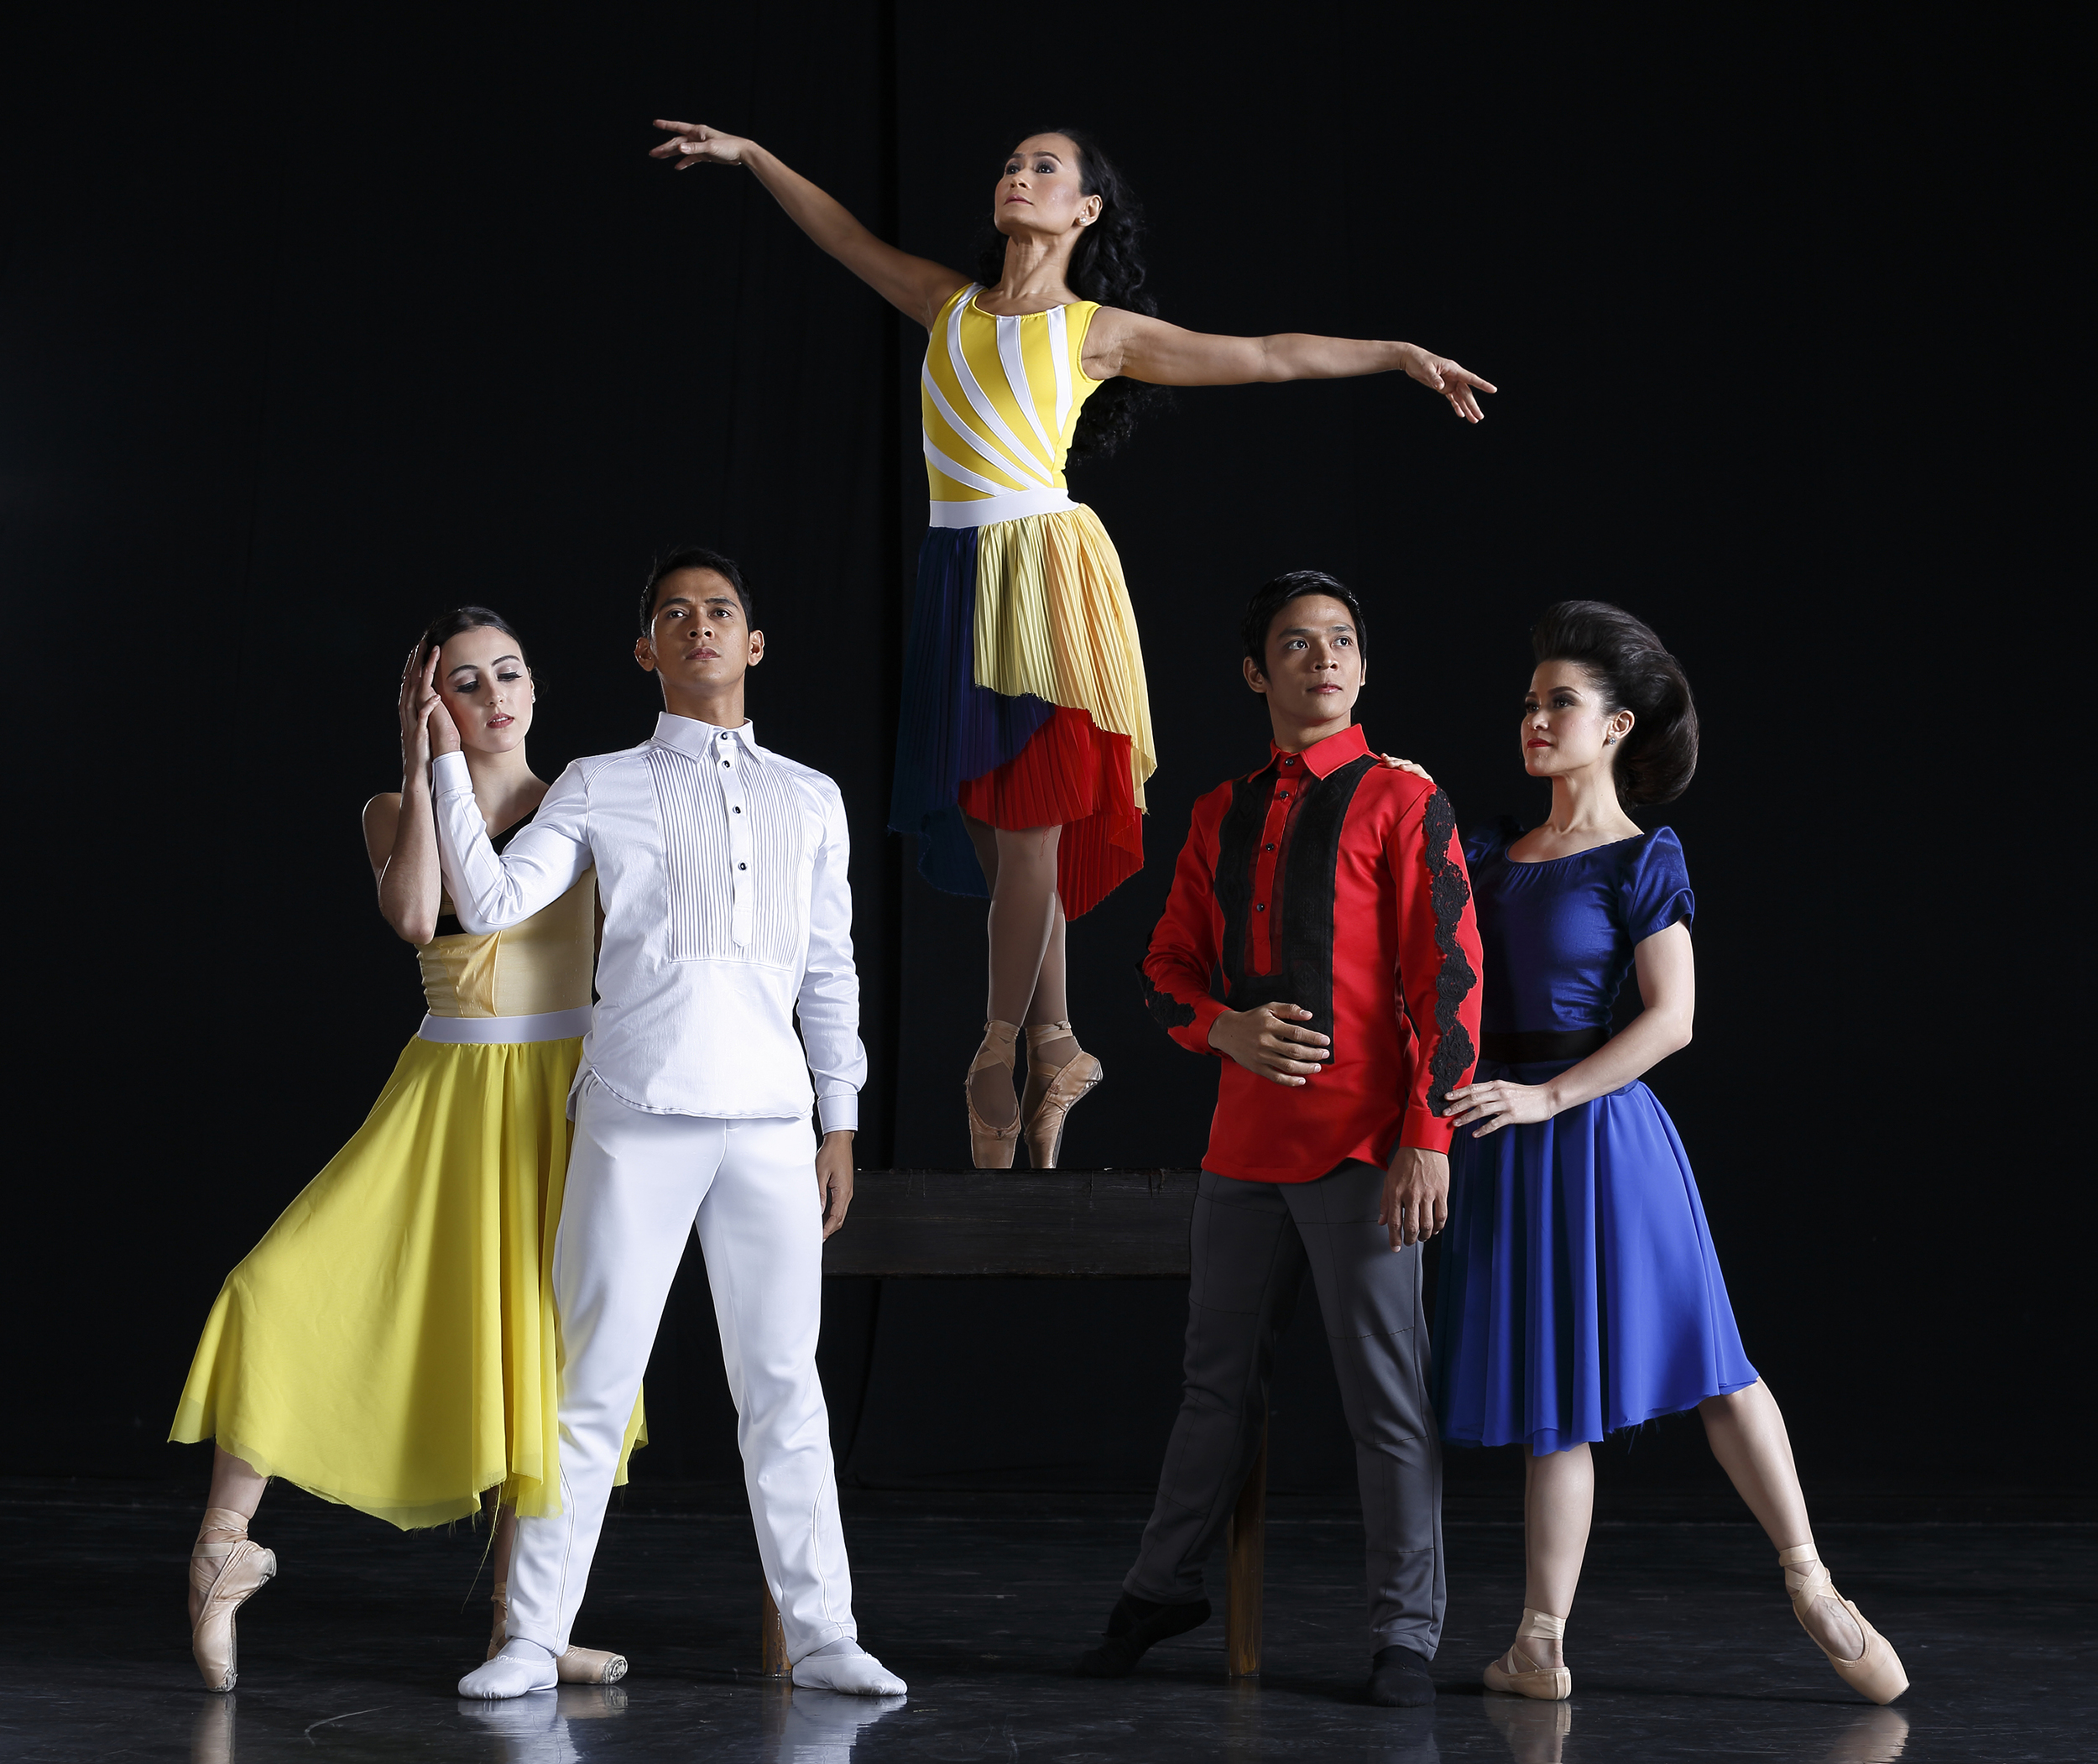 Revisiting the historic People Power Revolution,    Rebel:EDSA 30    is led by prima ballerina Lisa Macuja-Elizalde as Inang Bayan. Joining her are (L-R) principal dancers Katherine Barkman, Rudy De Dios, Gerardo Francisco, and soloist Tiffany Chiang-Janolo.